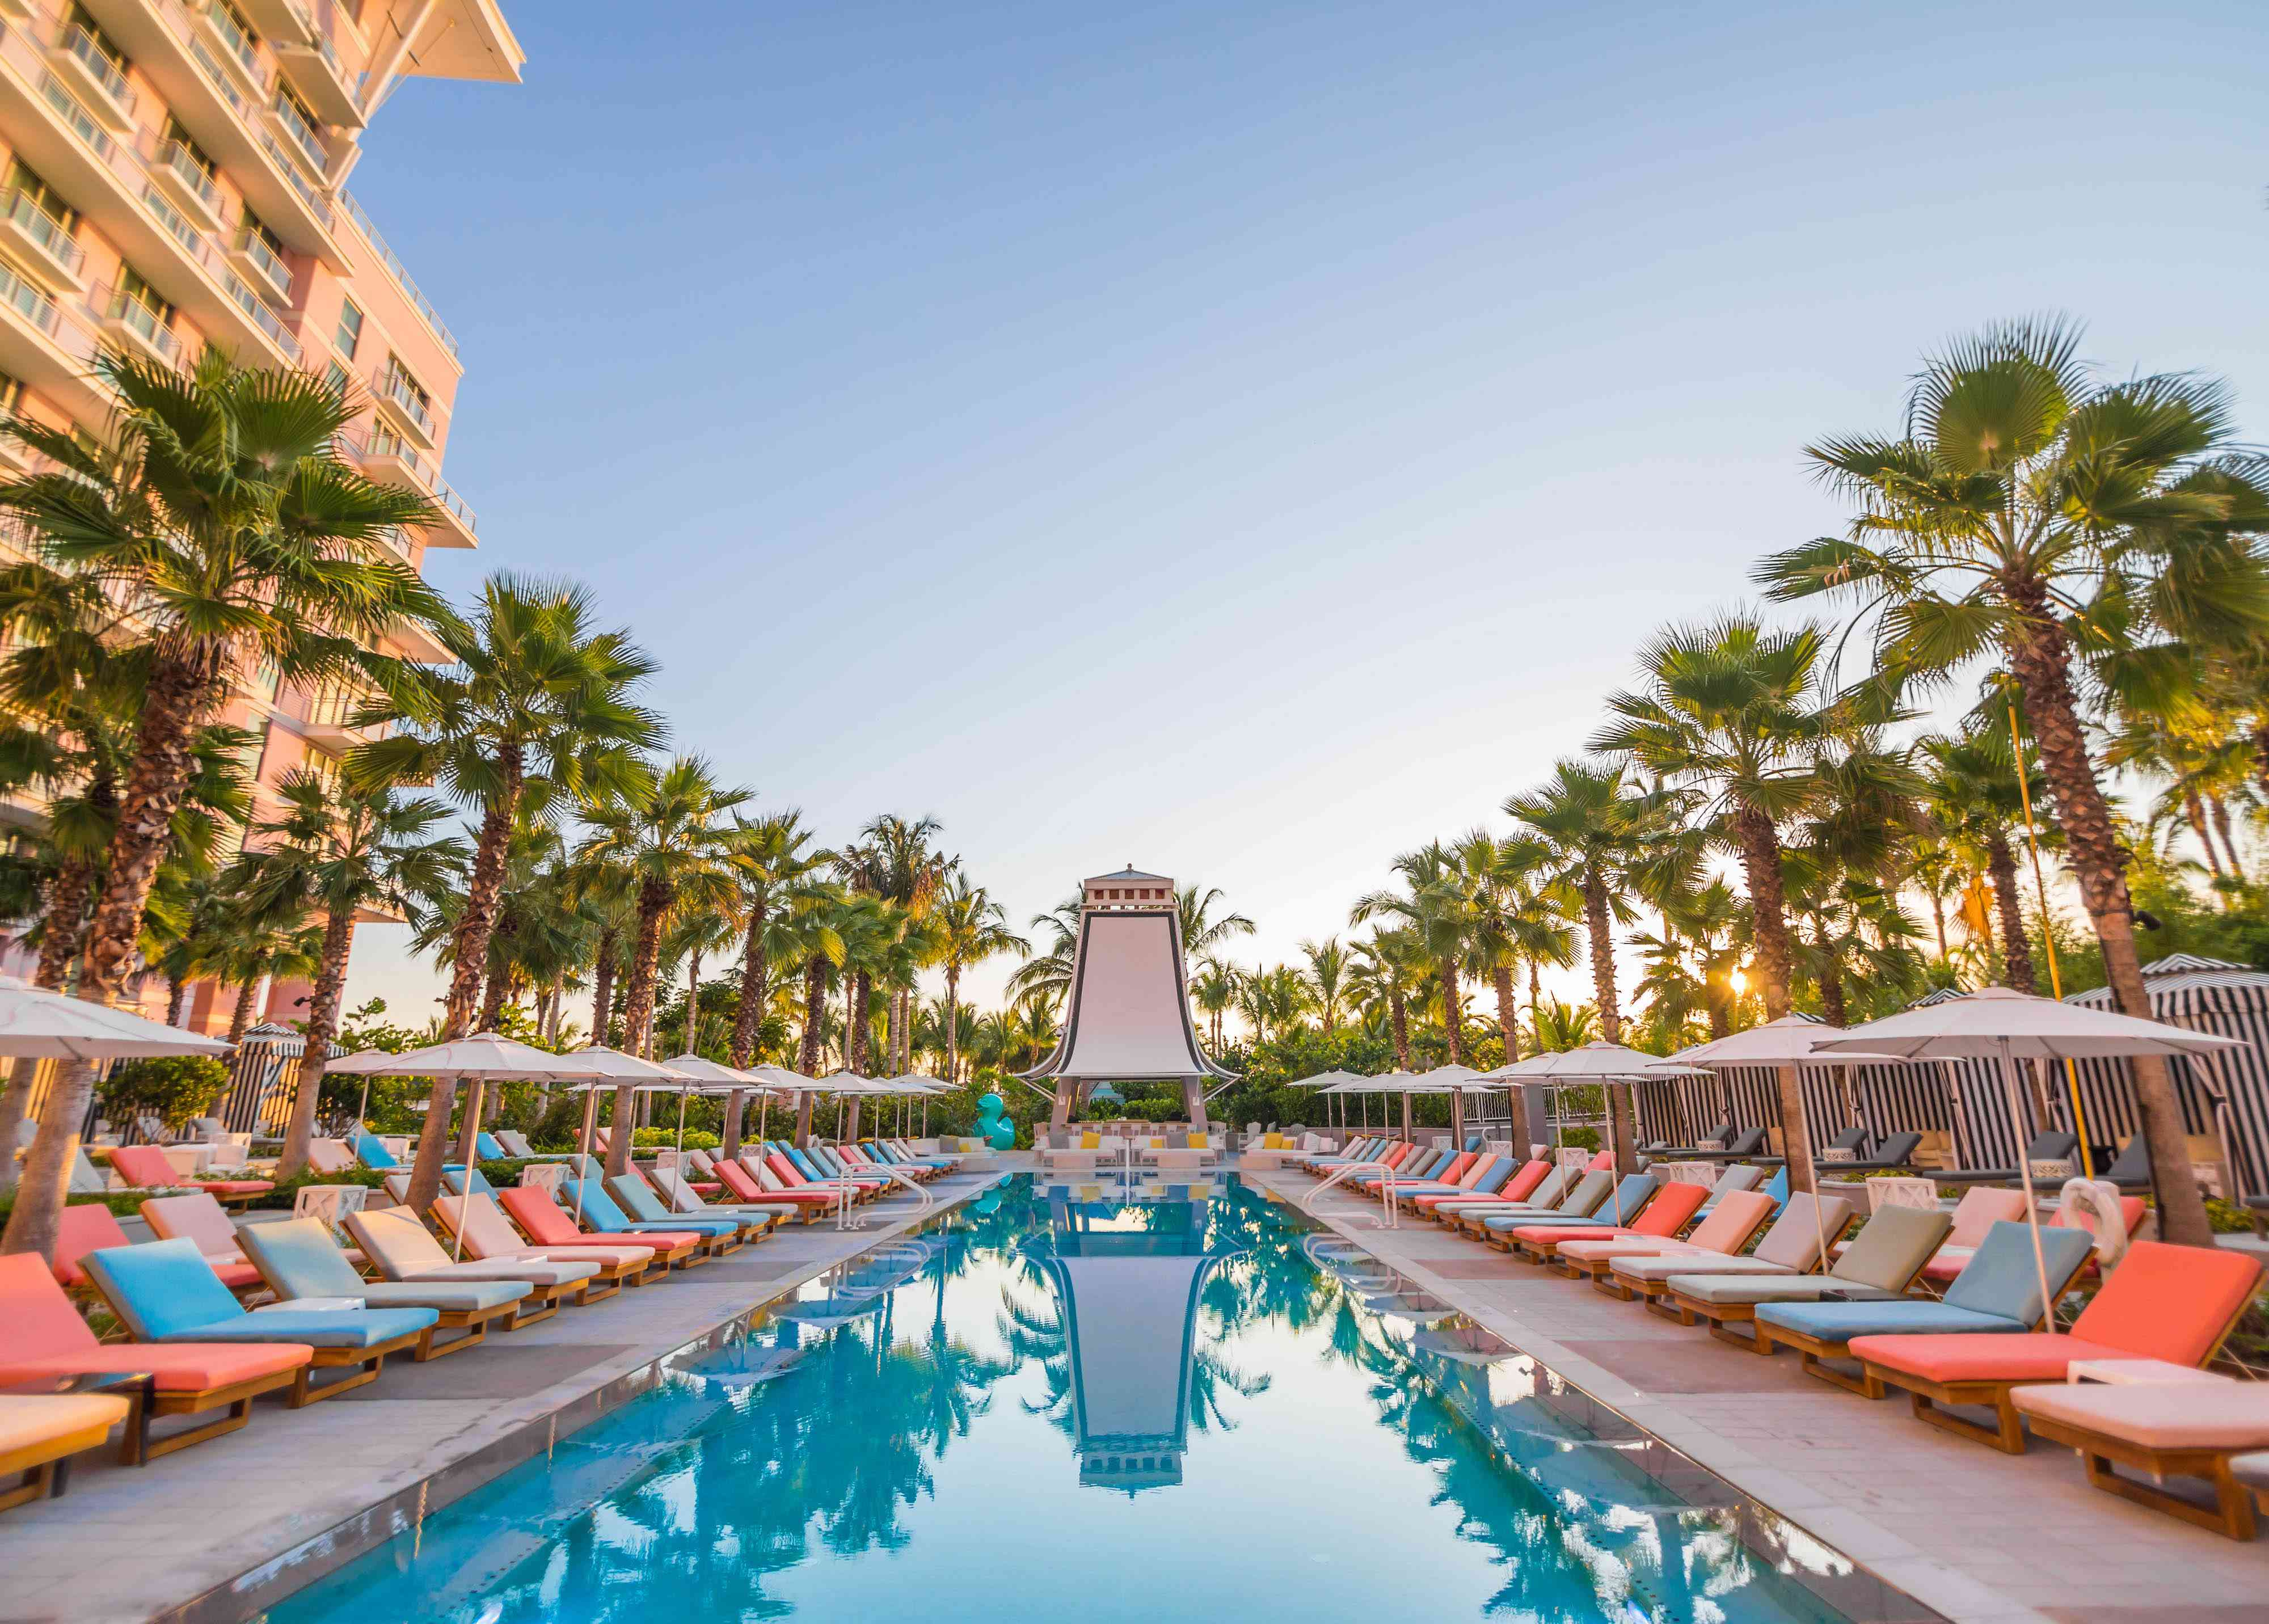 The Bungalow Pool and blue skies at SLS Baha Mar in Nassau